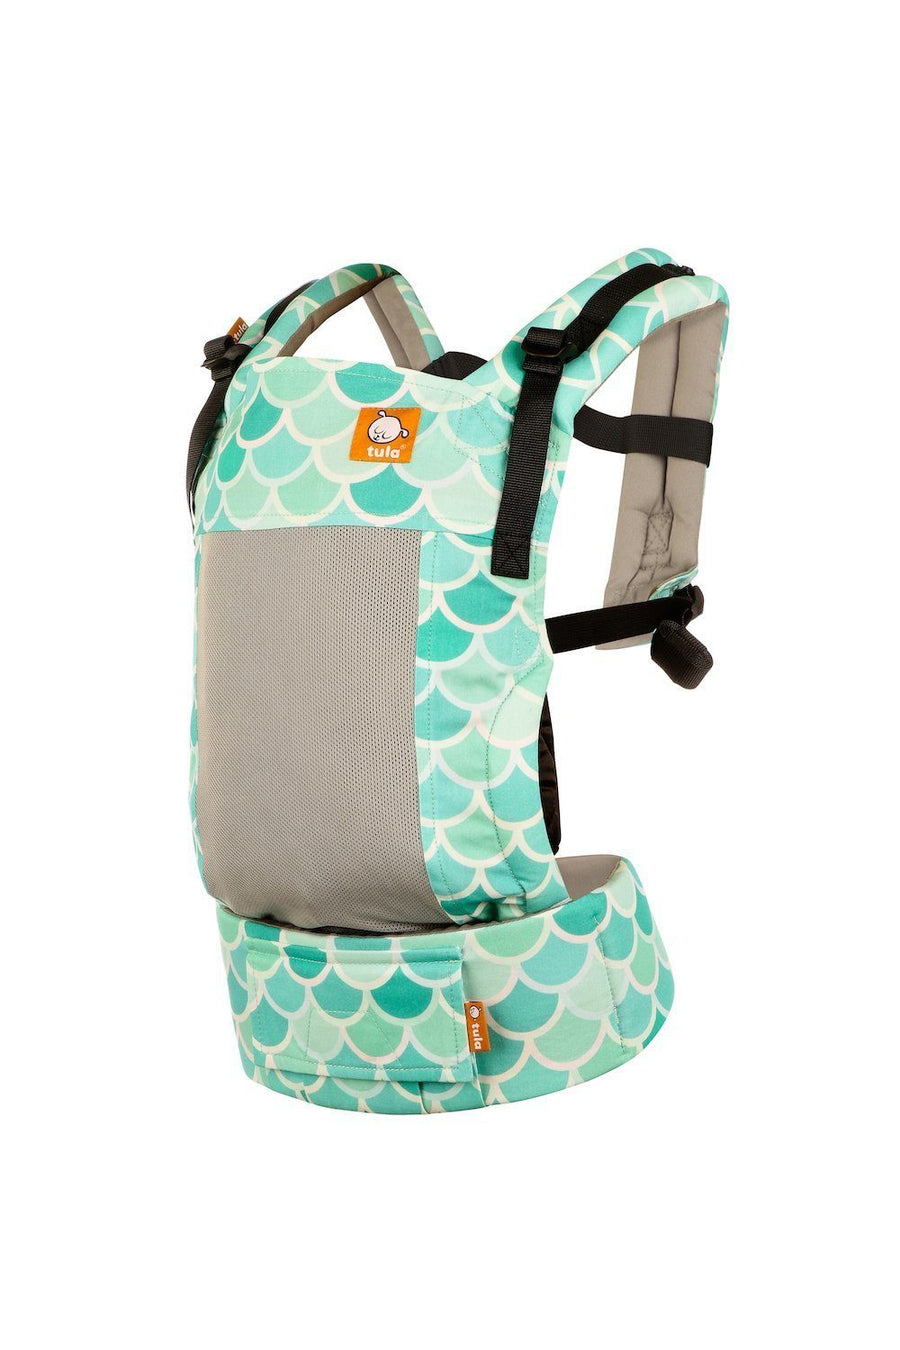 Tula Baby Carriers Australia Nest 2 Me Syrena Sky Coast Mesh Tula Toddler Carrier Tula Toddler Carriers Australia - Nest 2 Me Baby Carriers Australia